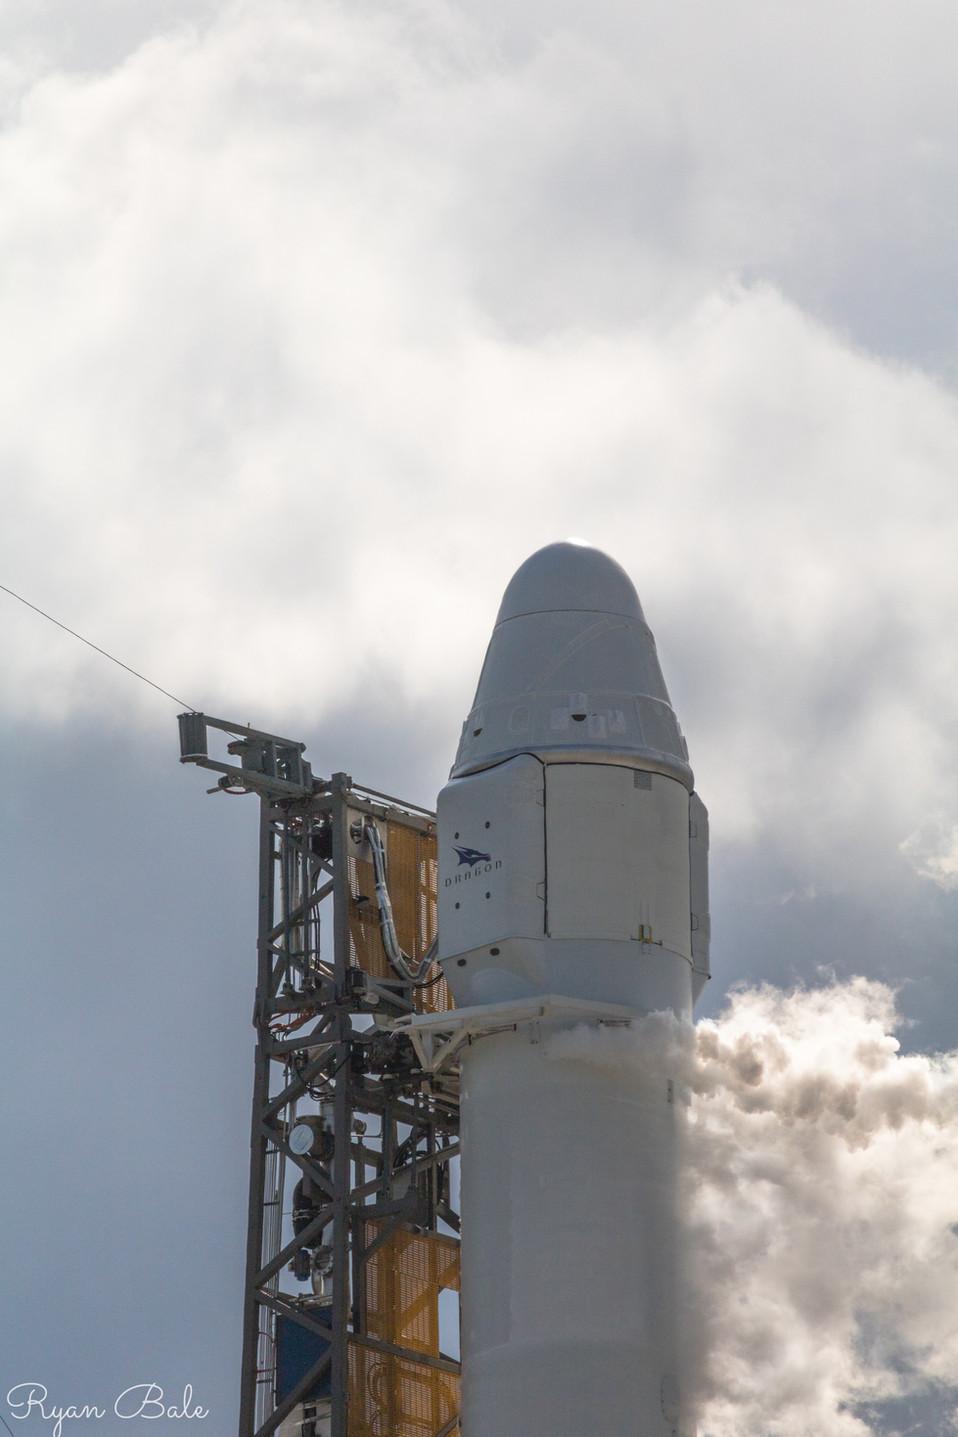 SpaceX to launch twice-flown Dragon spacecraft to the ISS